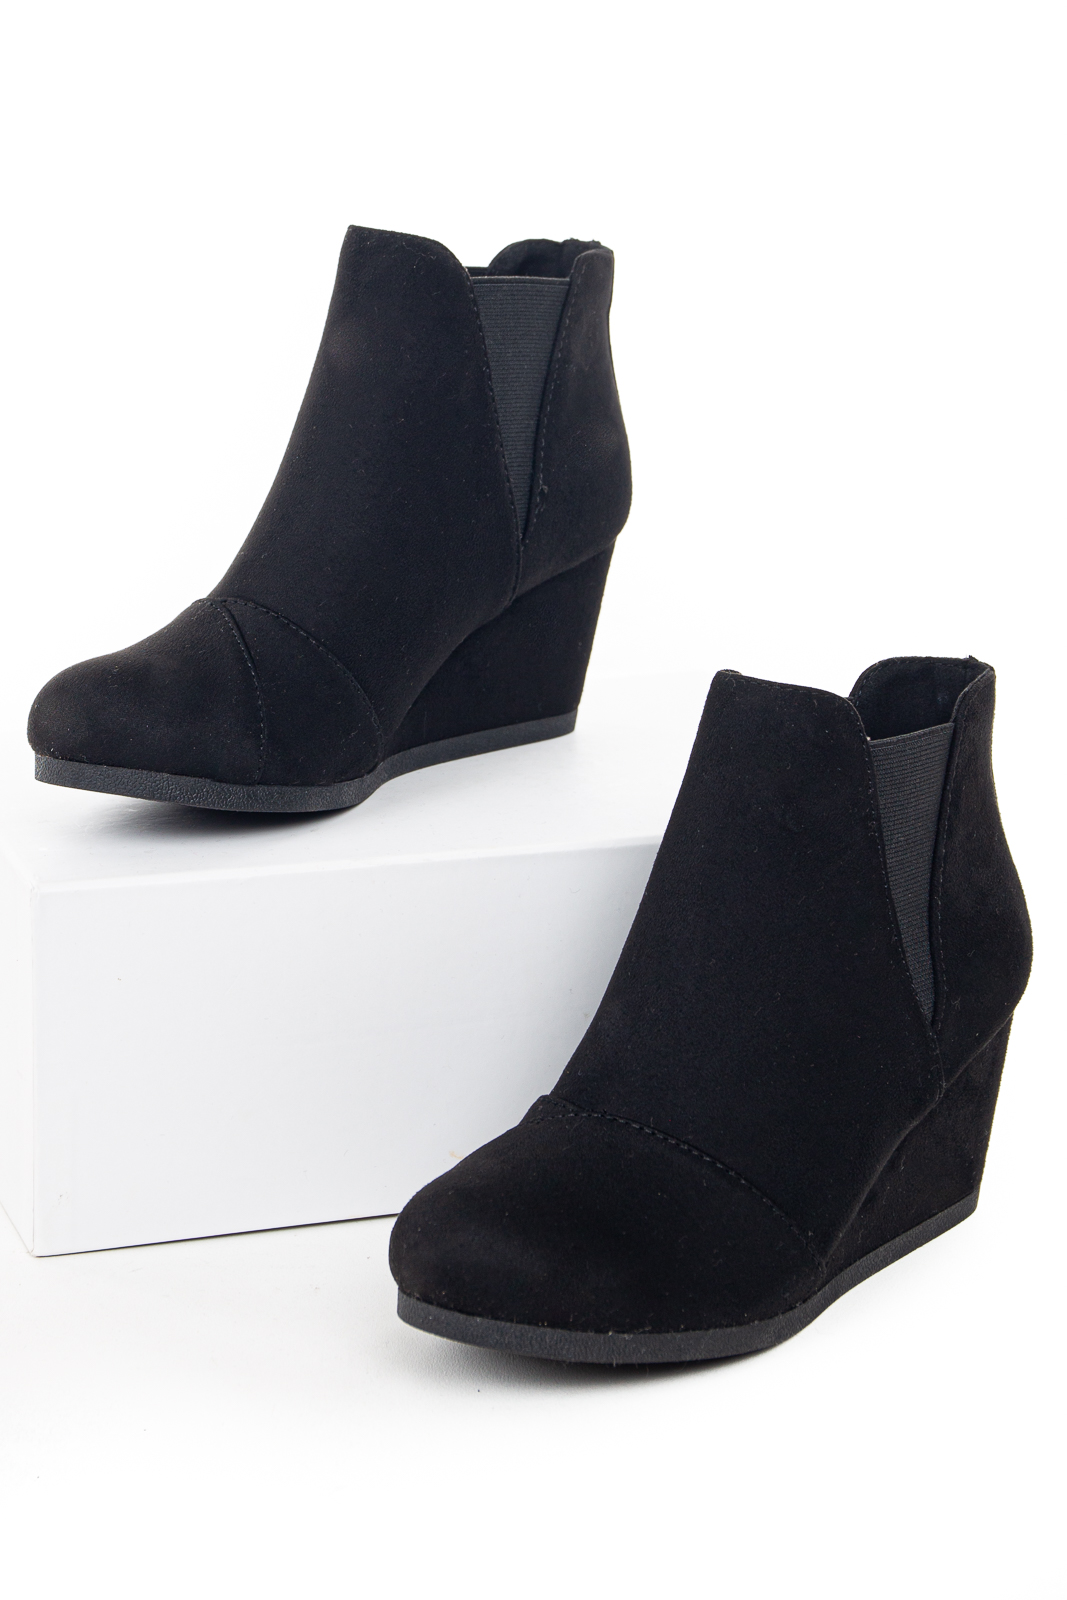 Black Elastic Wedge Heel Booties with Wrapped Detail